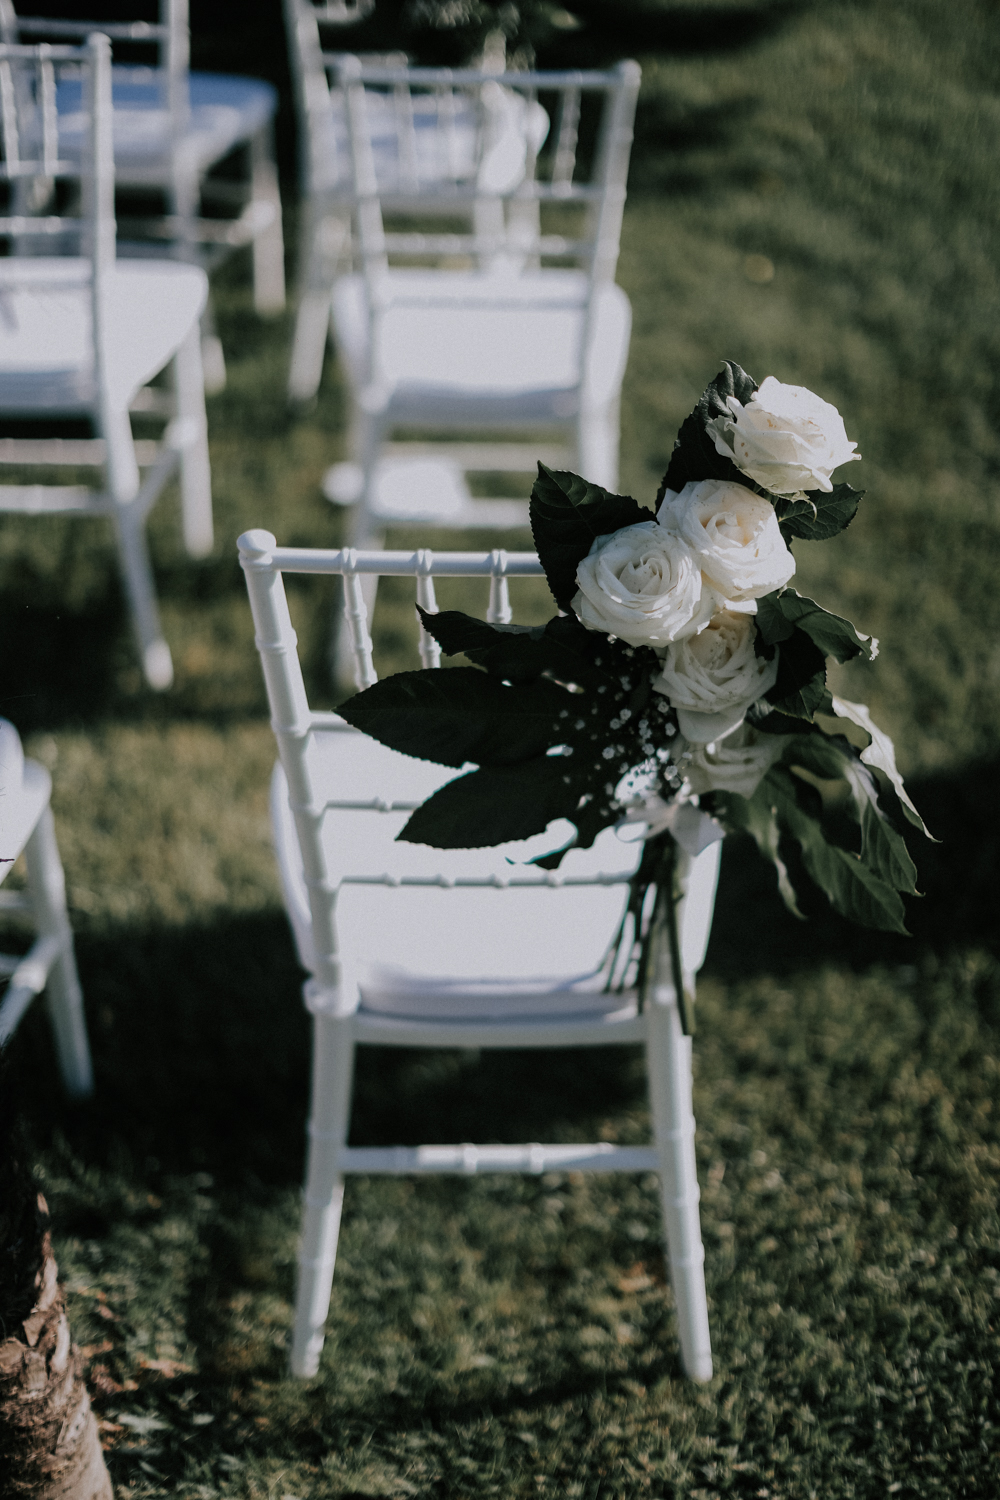 http://www.weddingamalfi.com/wp-content/uploads/Alessandro-and-Diego-white-wedding-chiar-decoration-with-fresh-flowers.jpg